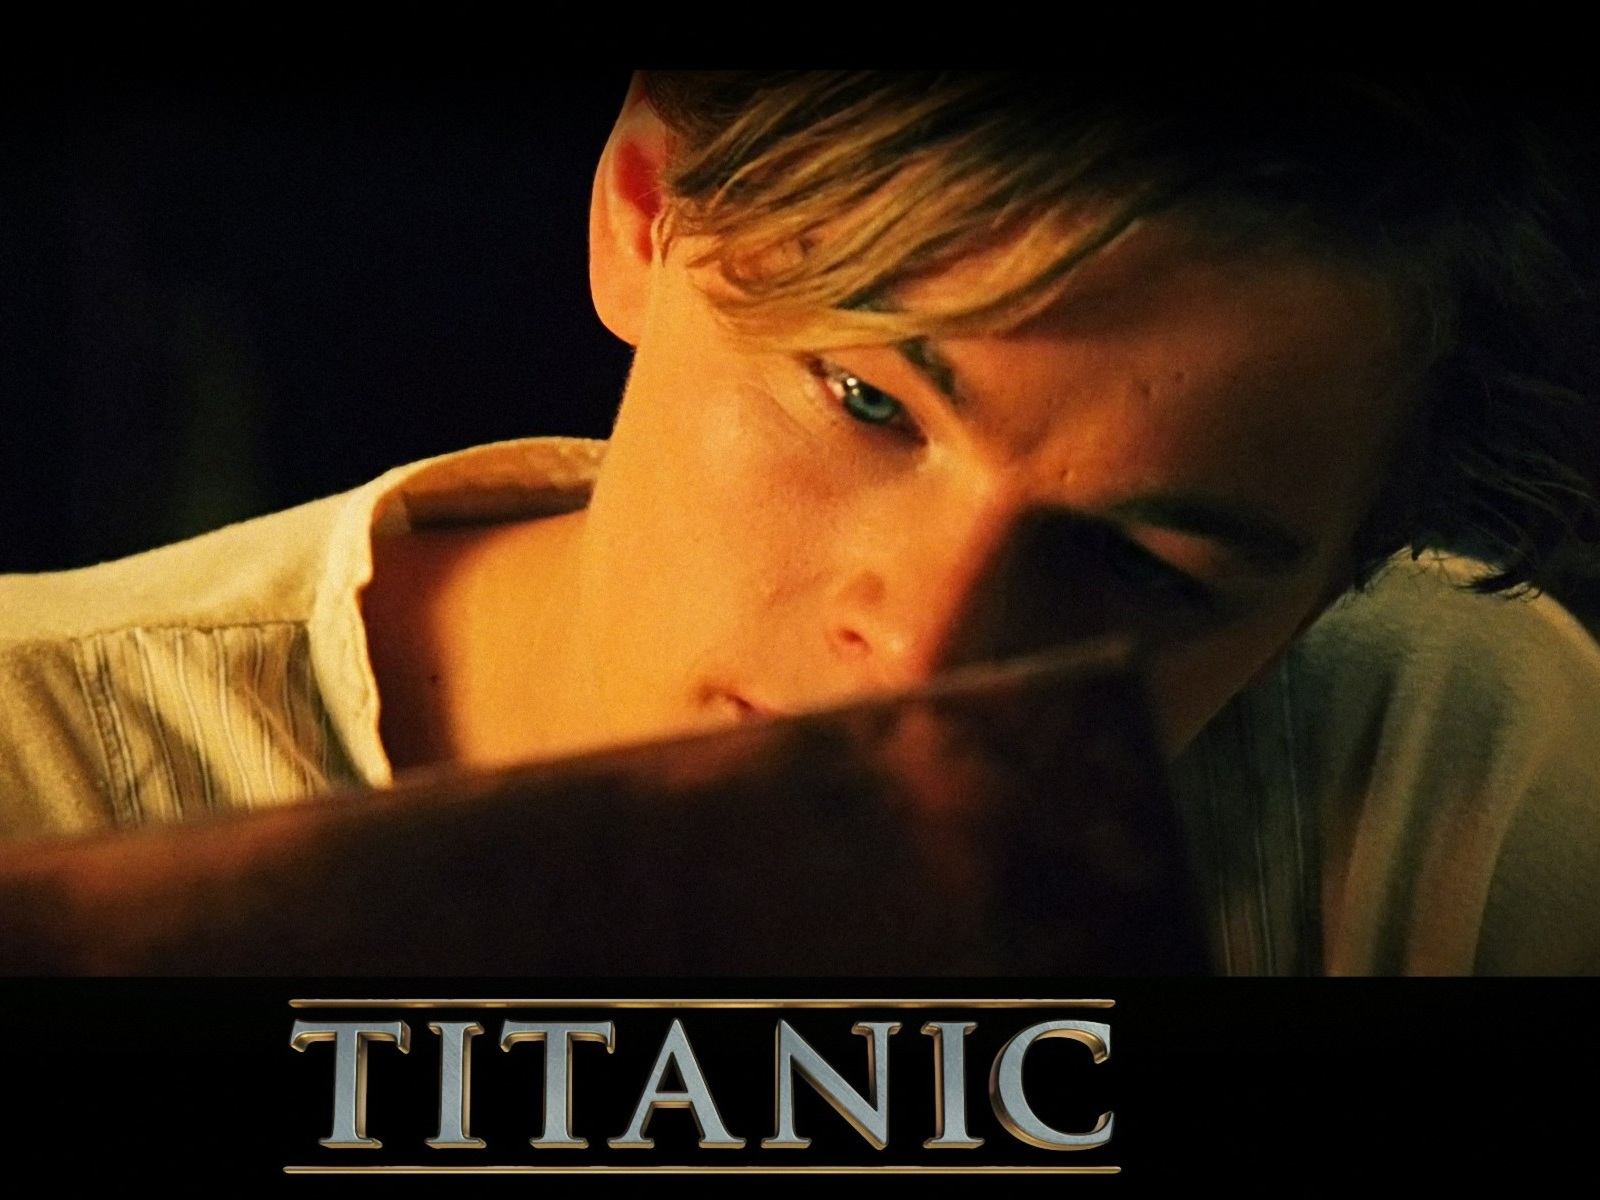 Titanic - lyrics | Listn.to